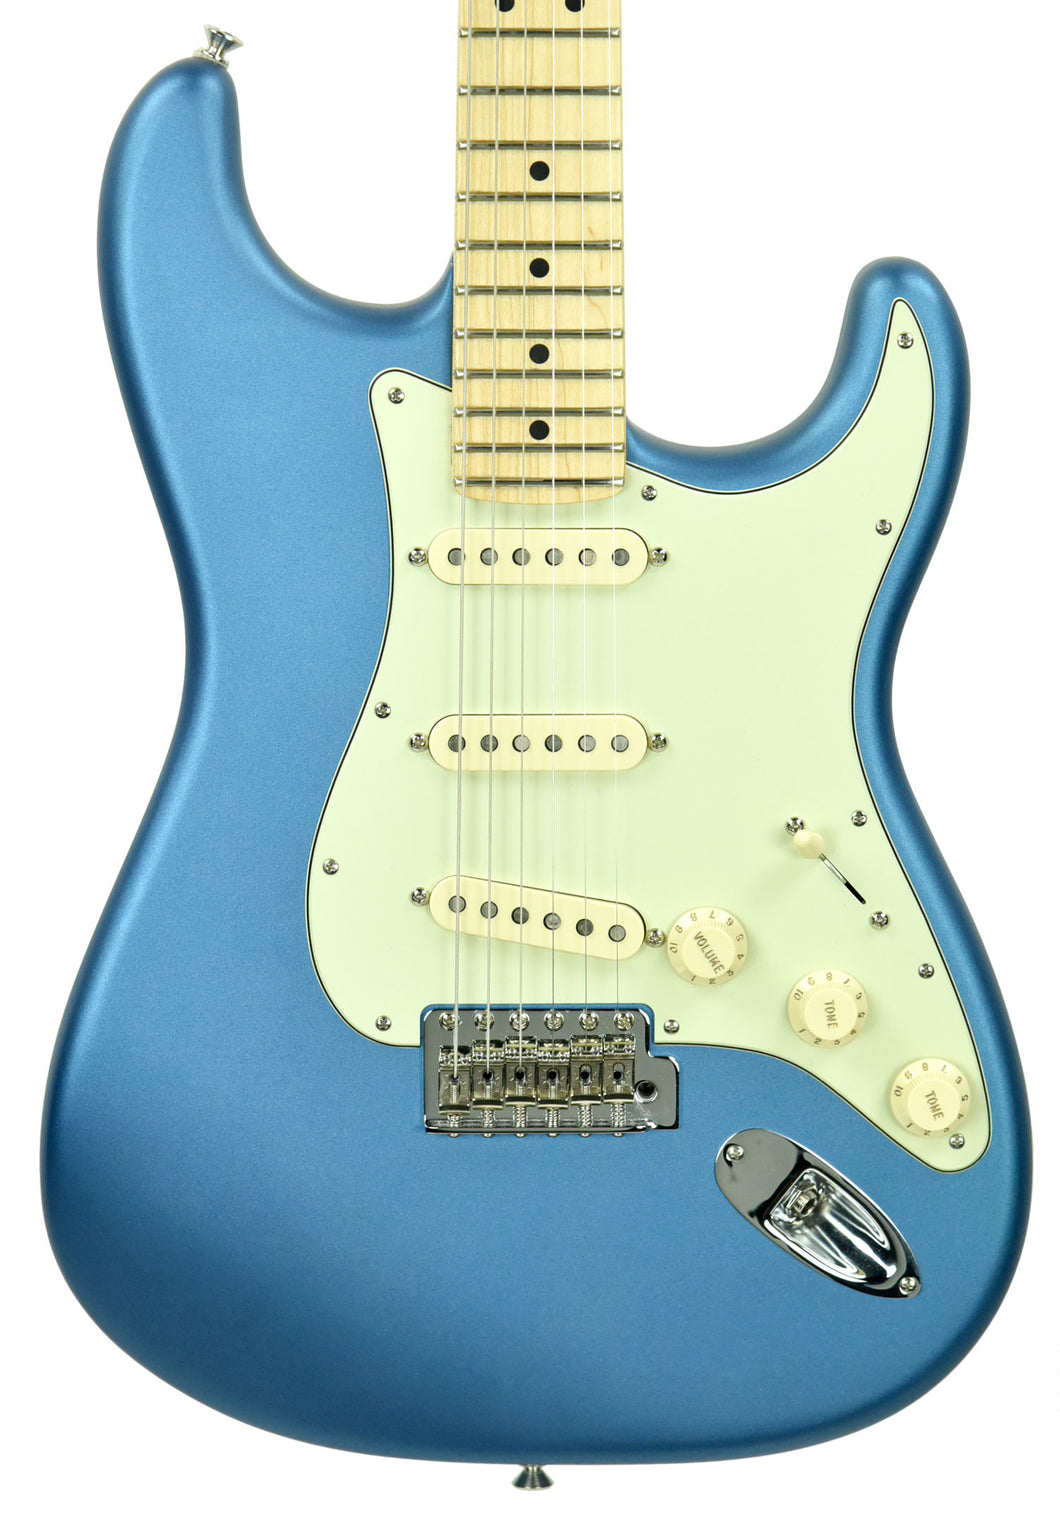 Used Fender American Performer Stratocaster in Satin Lake Placid Blue US18103687